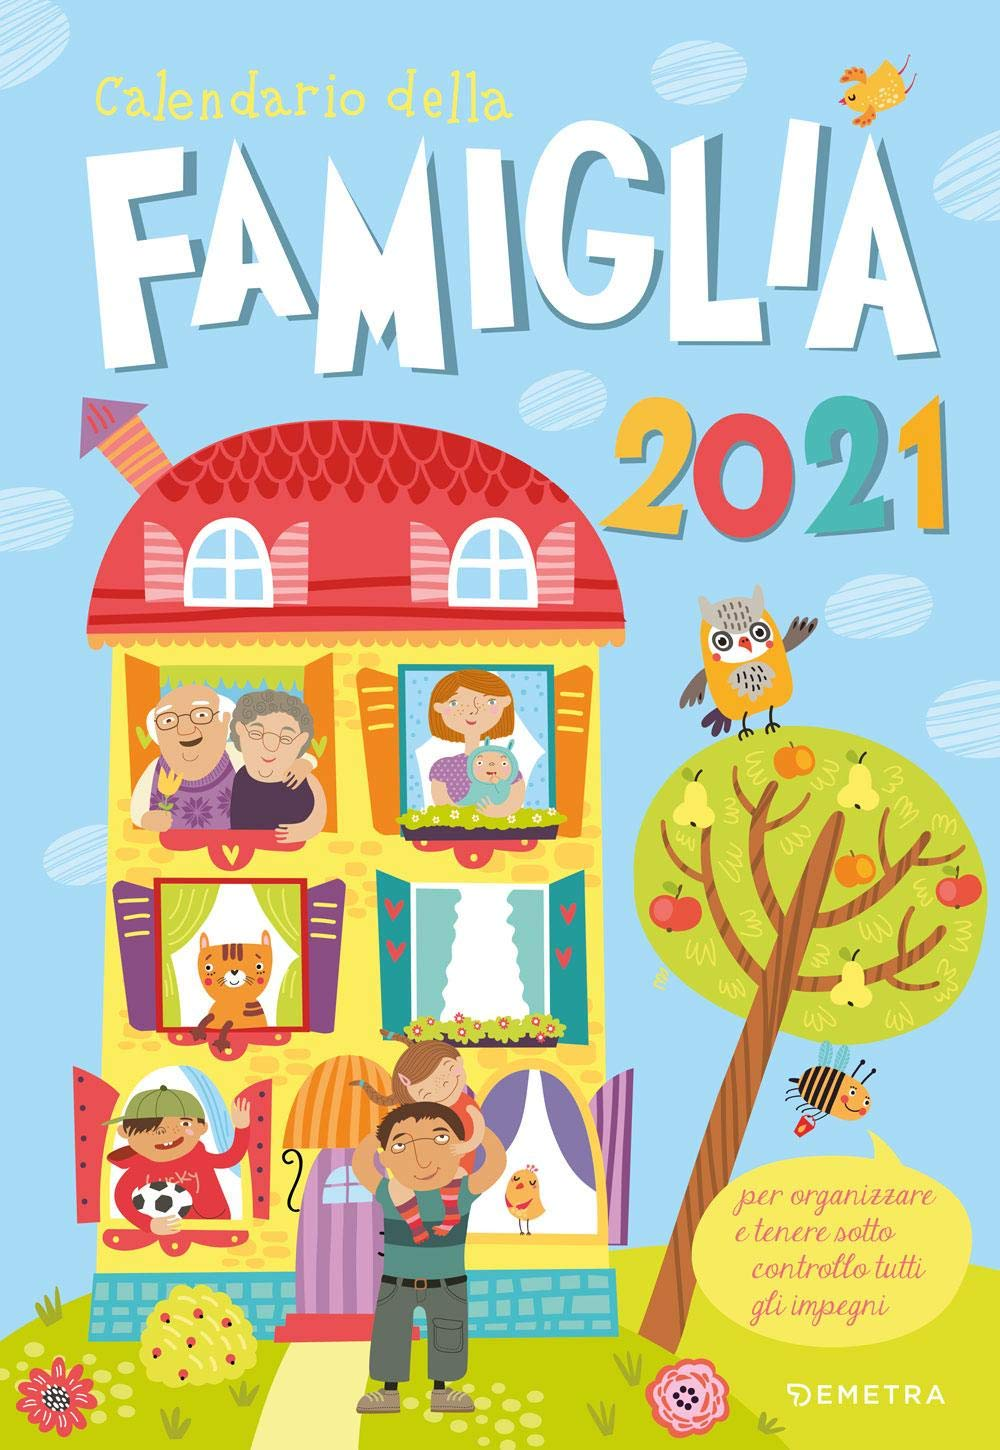 Amazon.it: Calendario della famiglia 2021     Libri